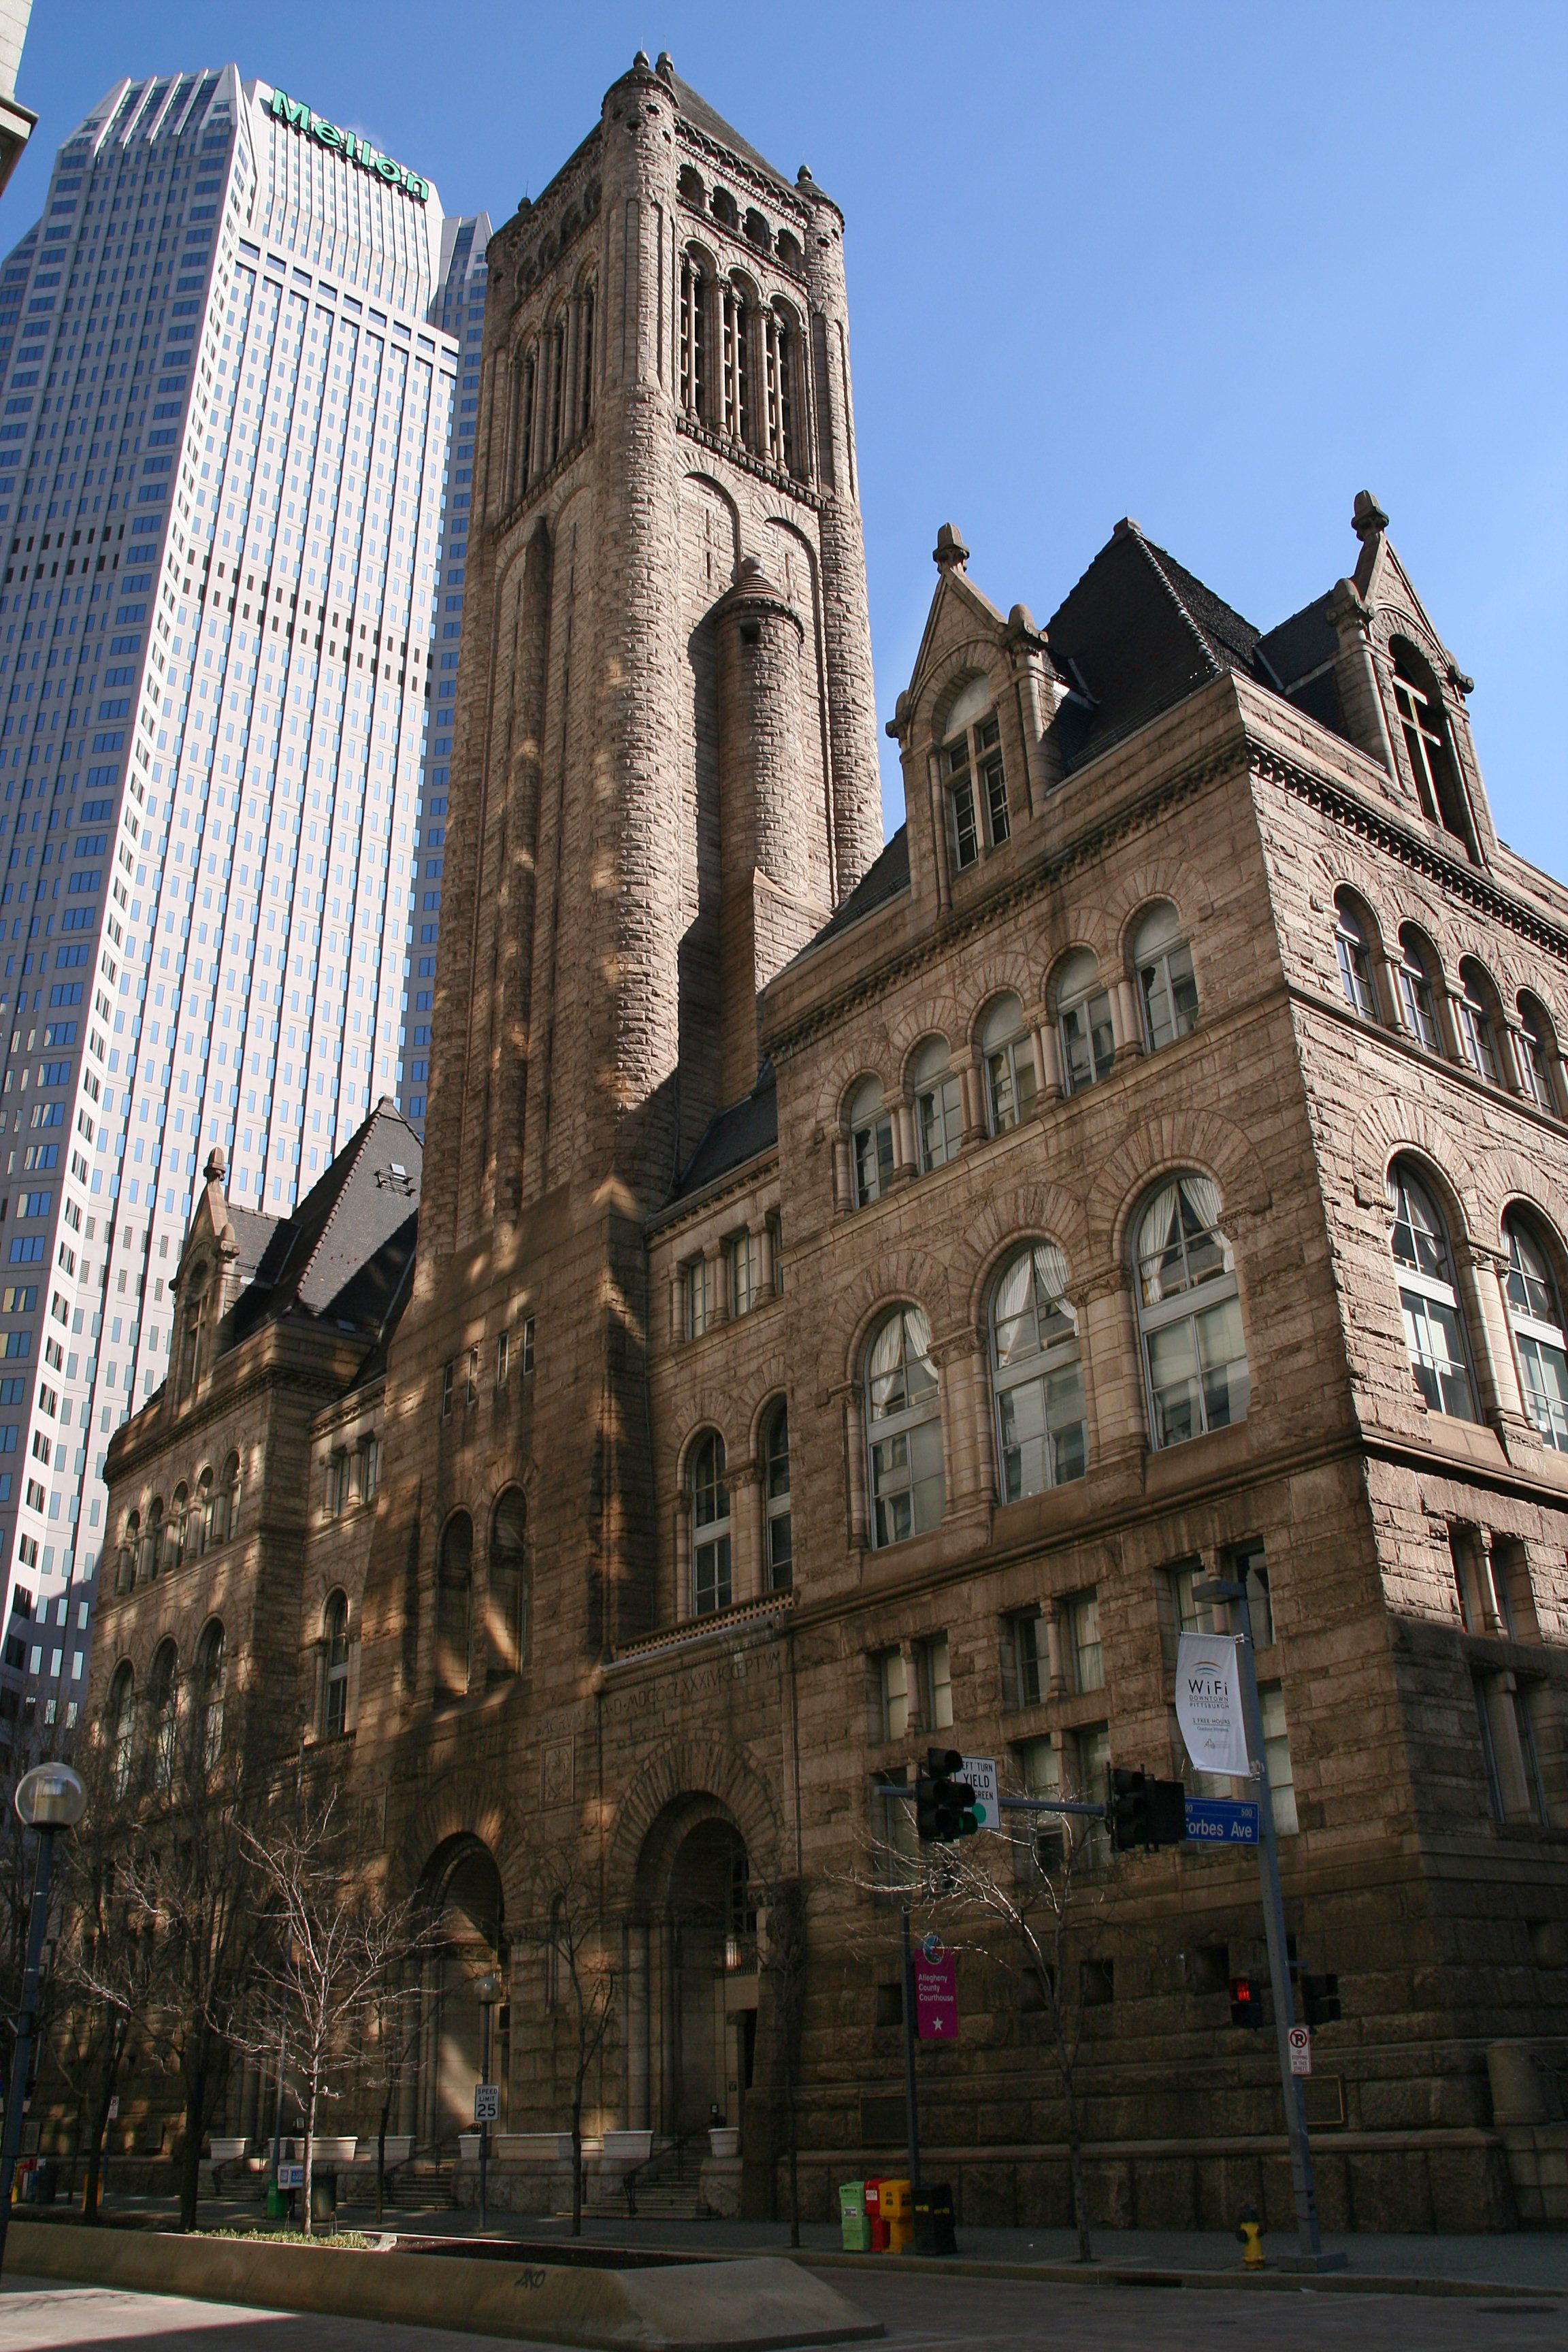 Stunning Romanesque revival style in the old county courthouse in ...